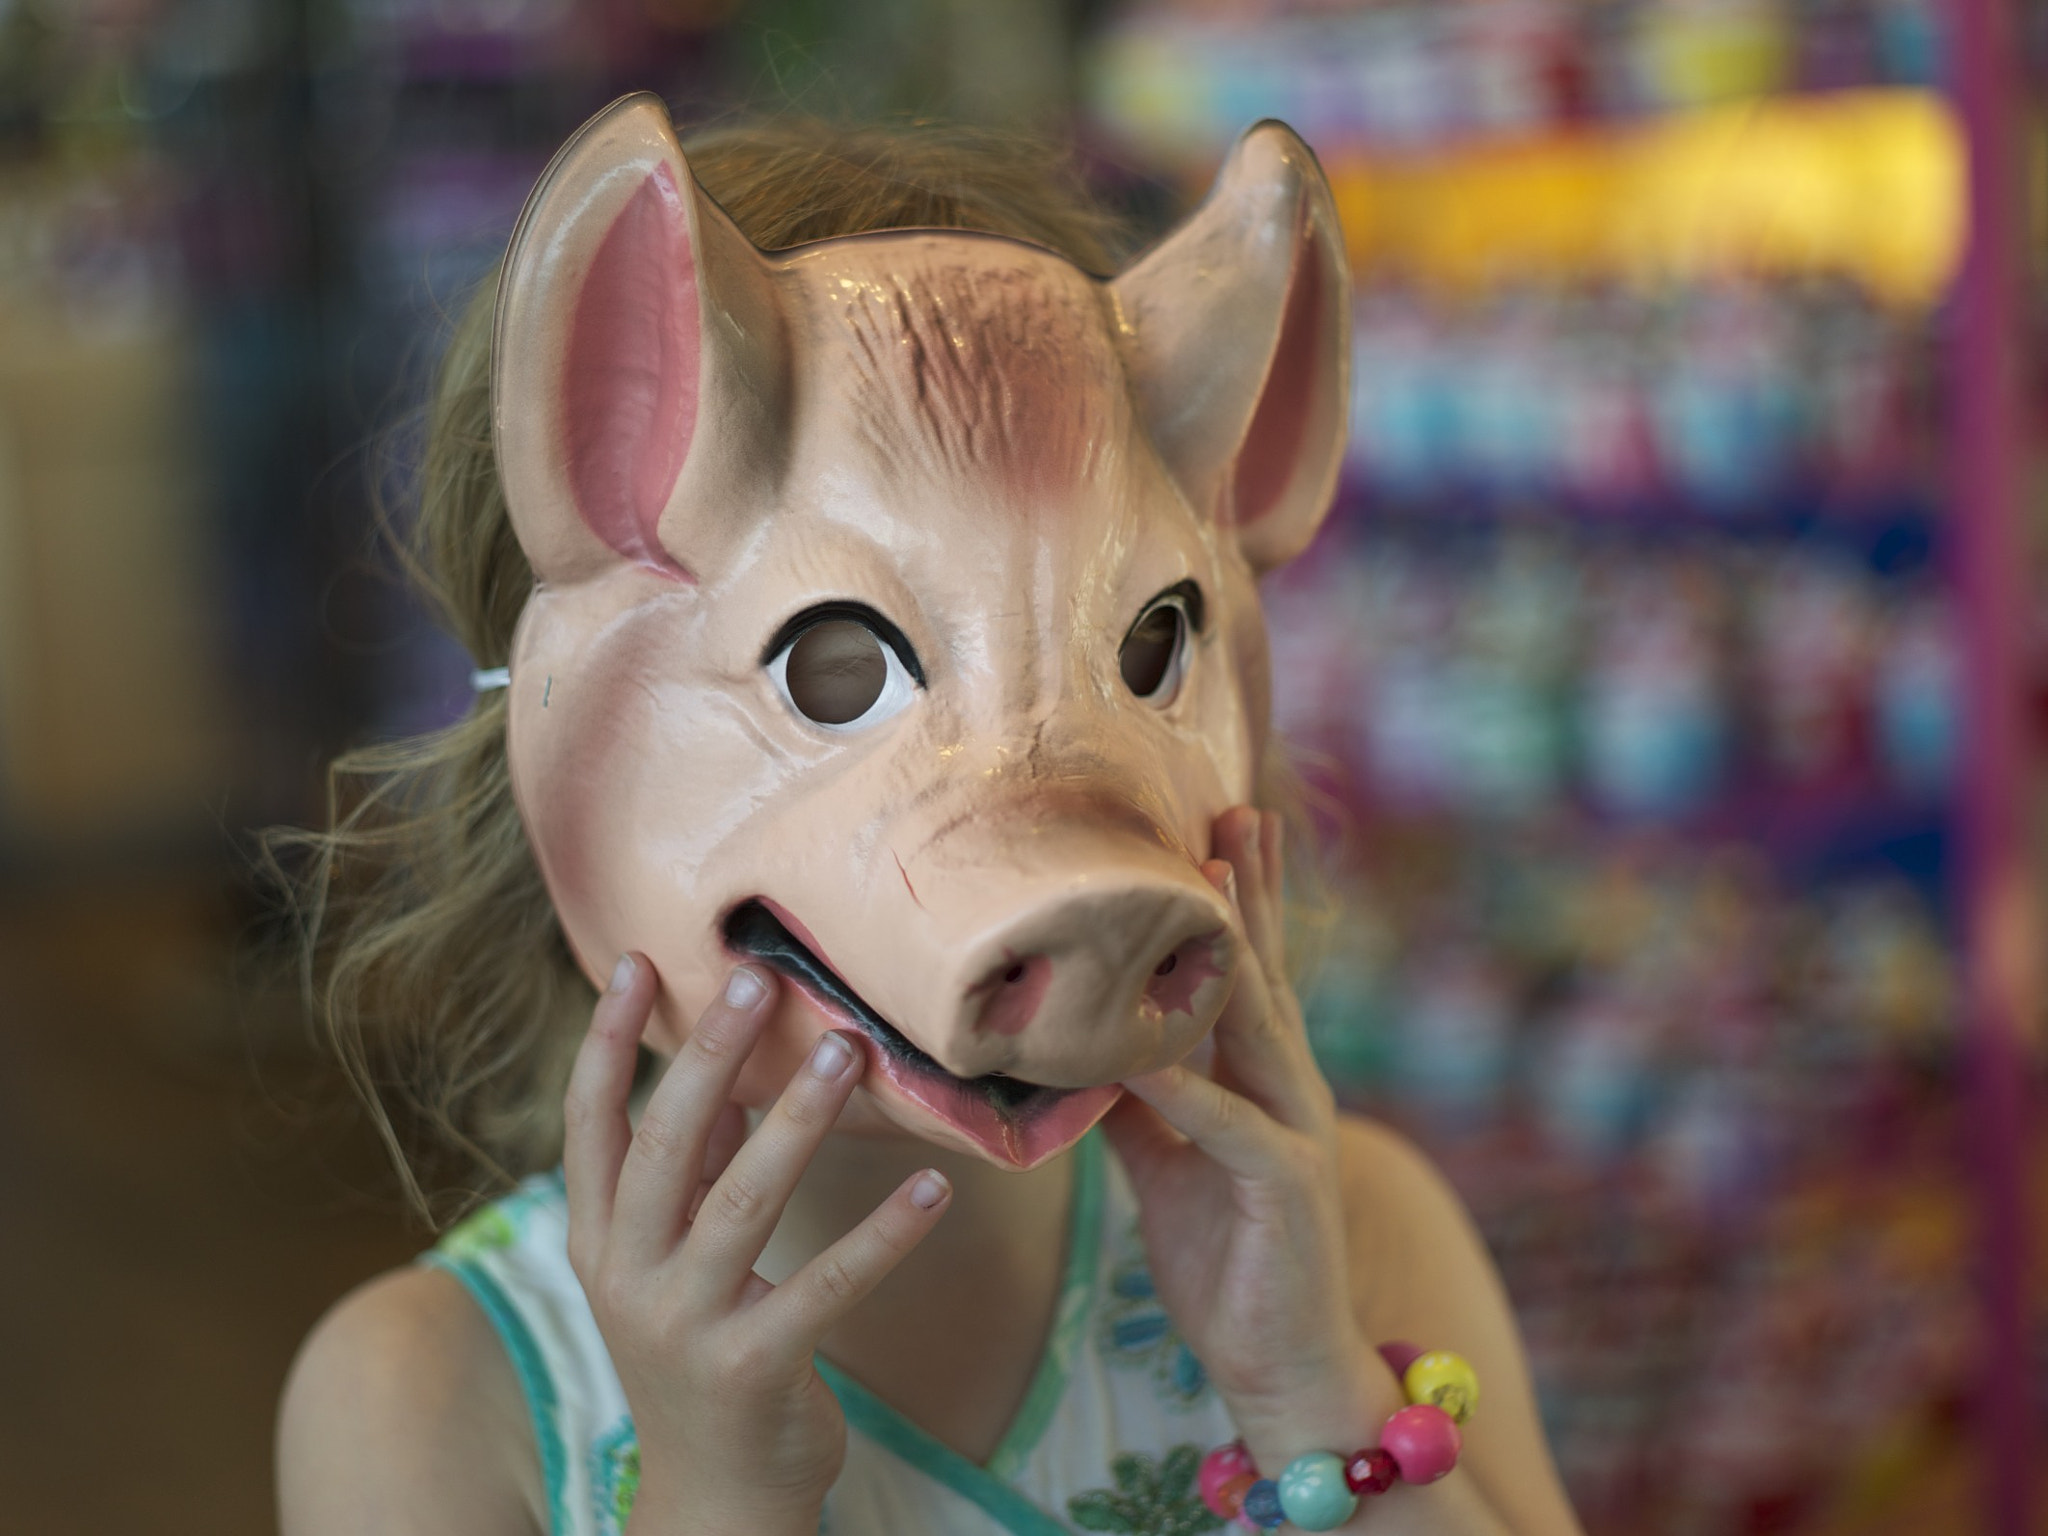 Photograph Piggy! by Robert Moores on 500px